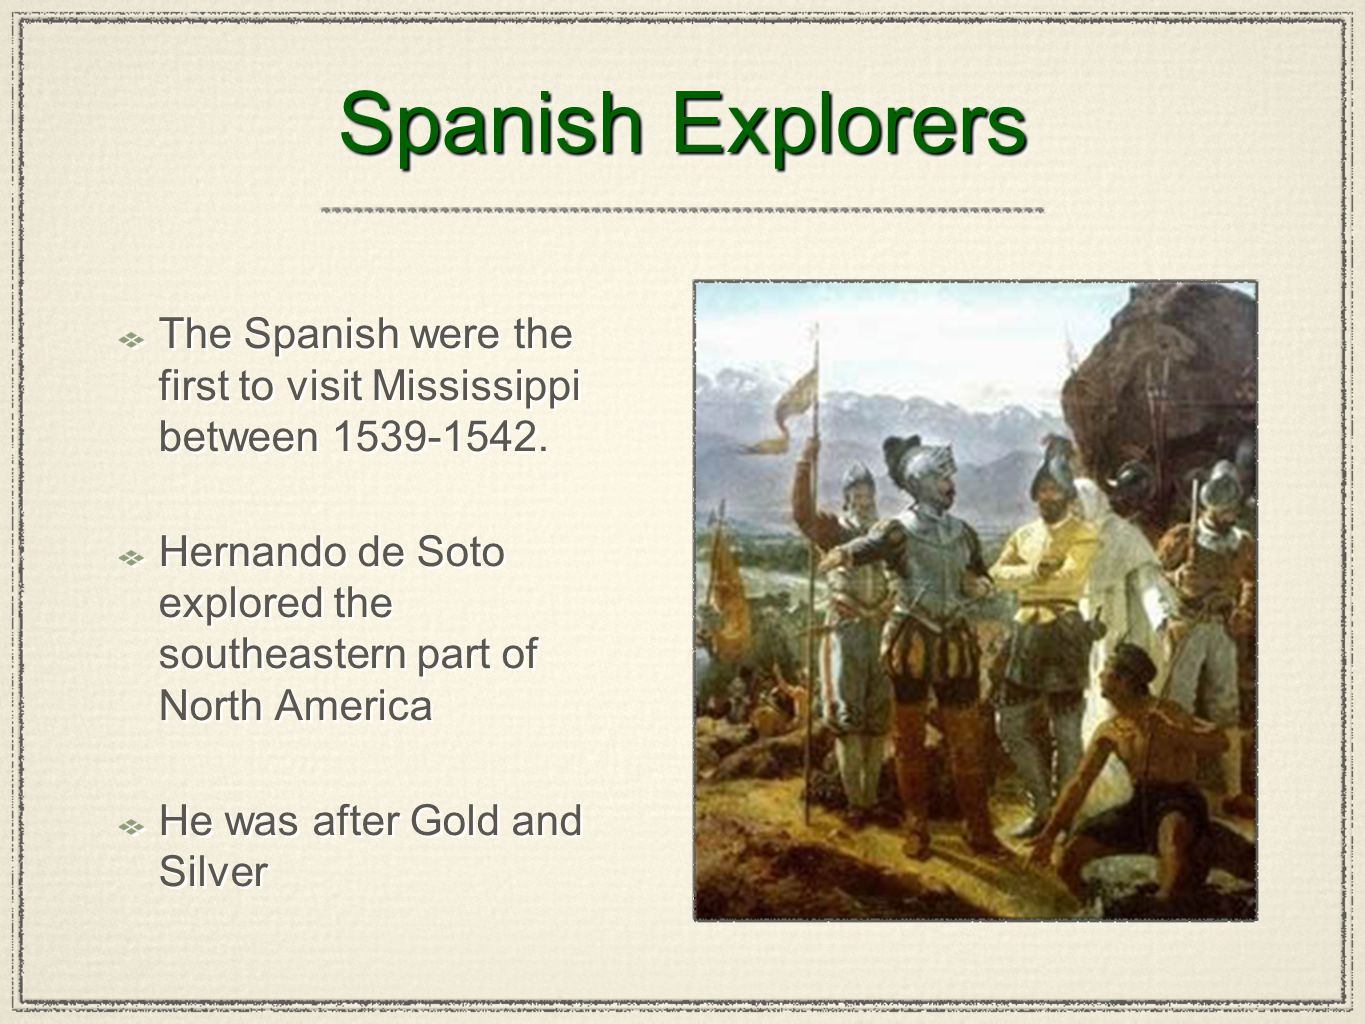 Spanish Explorers The Spanish were the first to visit Mississippi between 1539-1542.